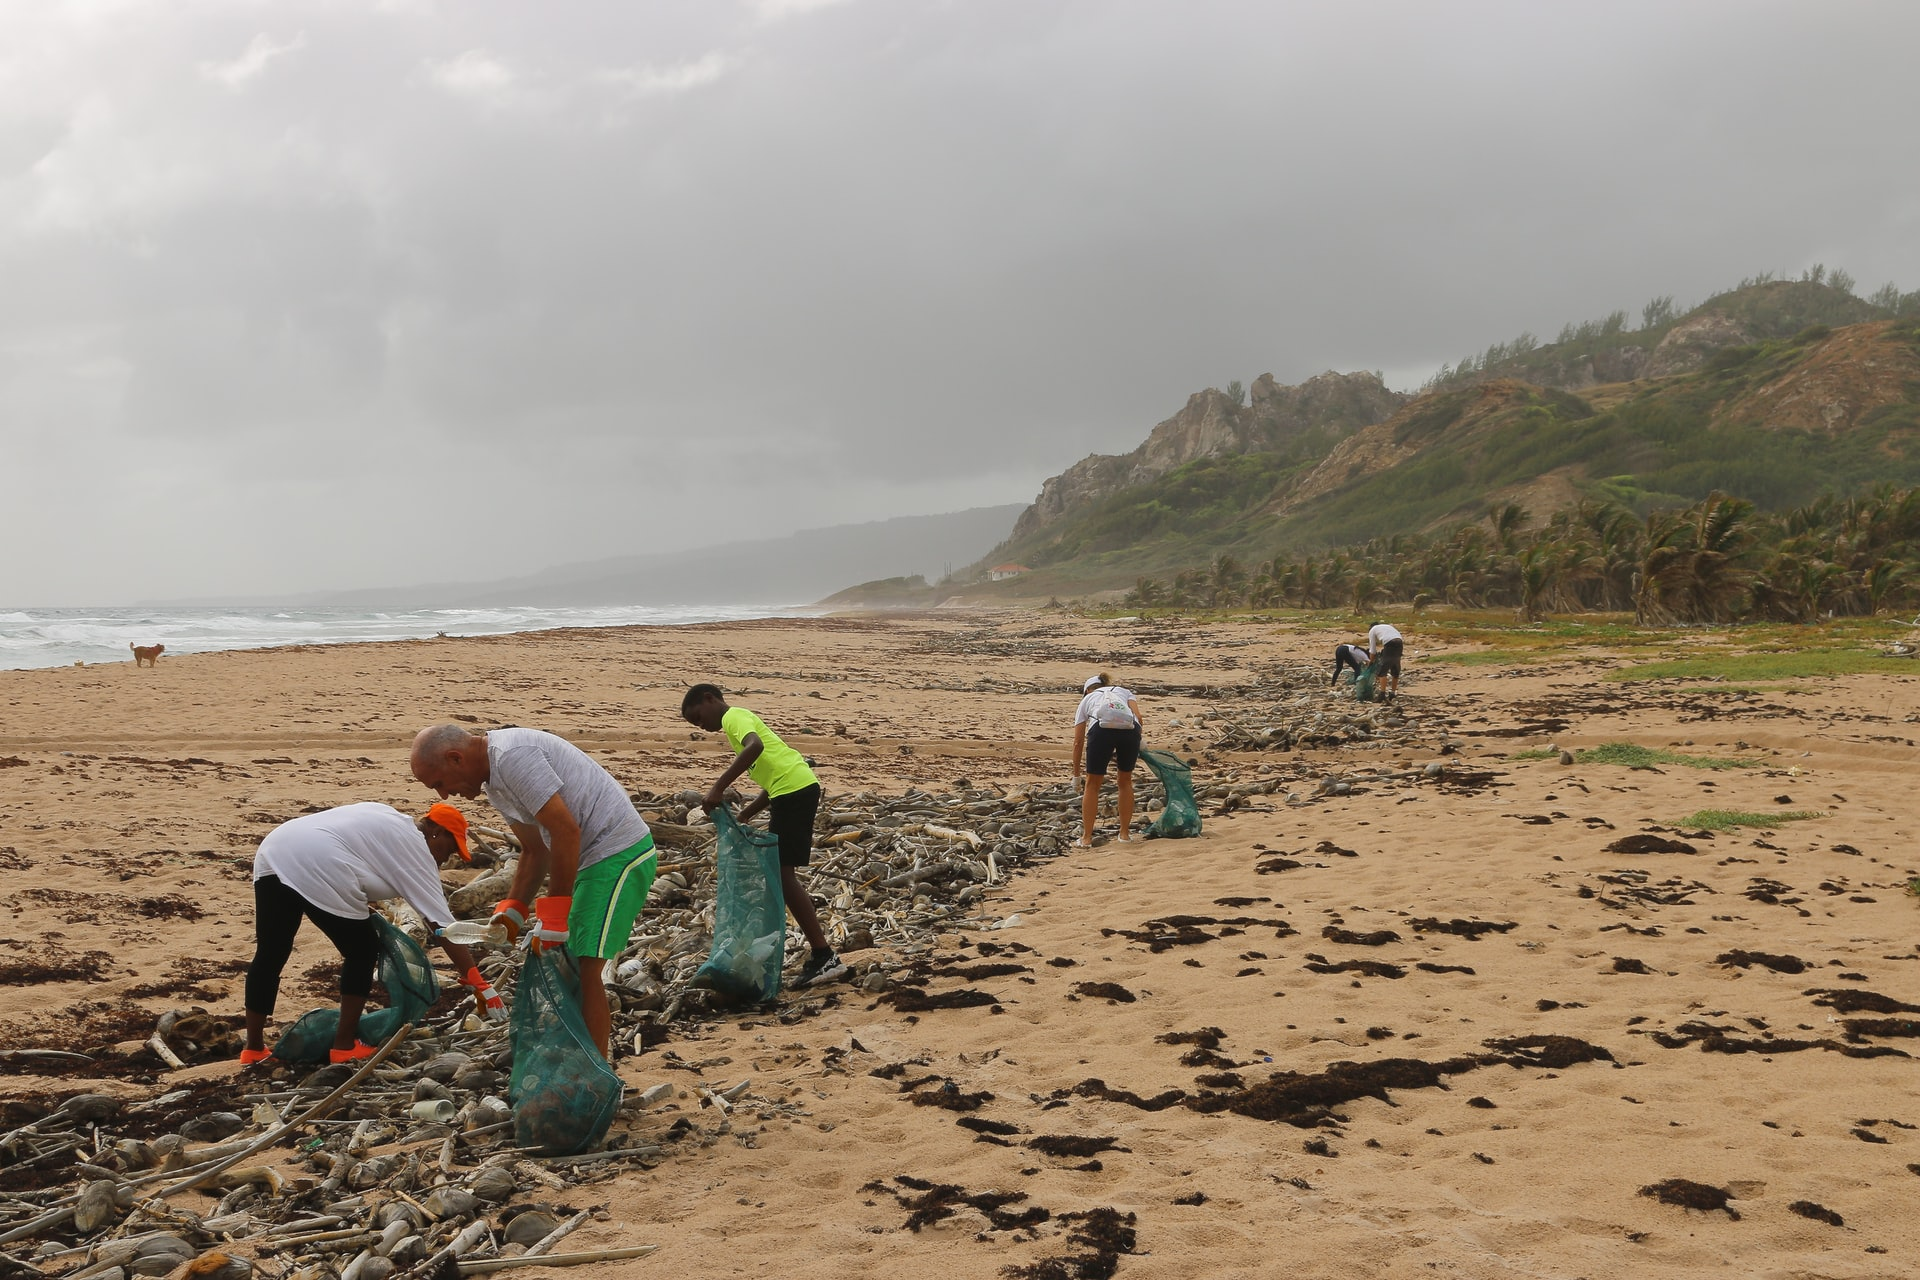 people working together to clean up a littered beach beach